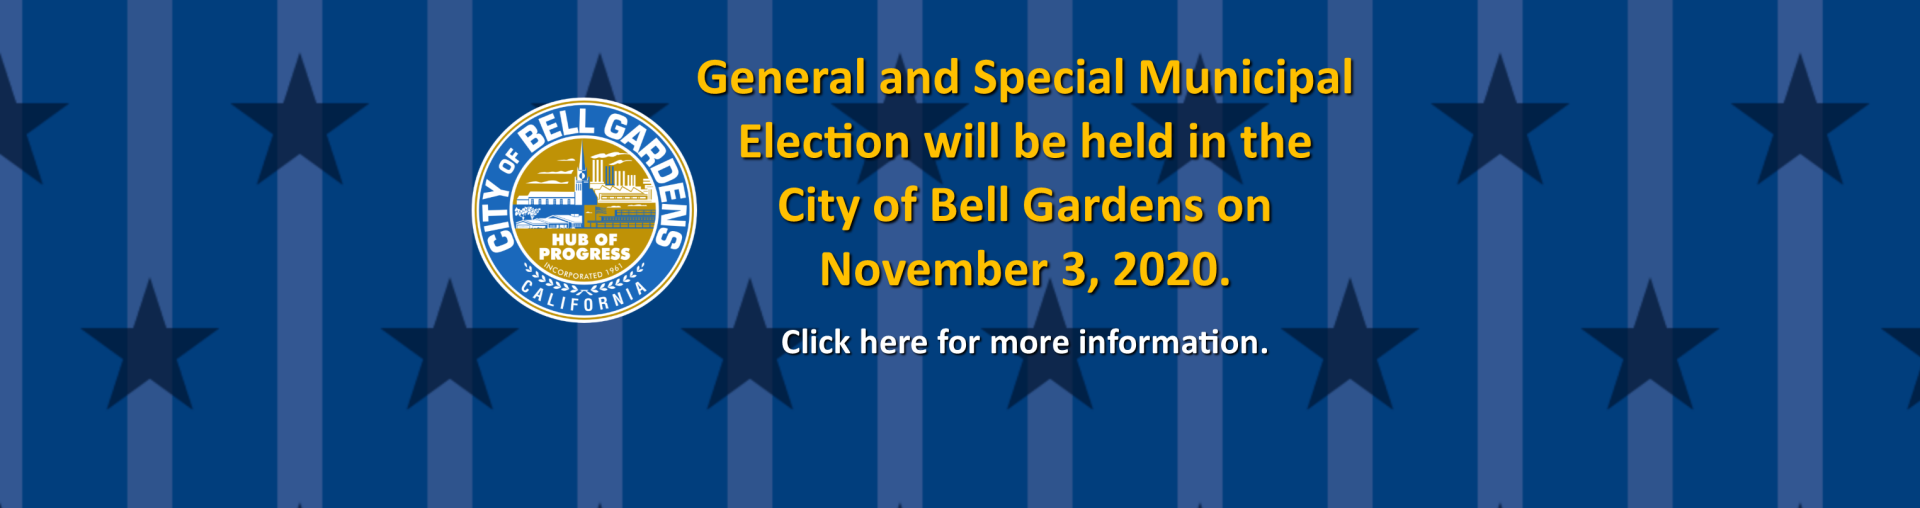 BG General and Special Municipal Election Banner1